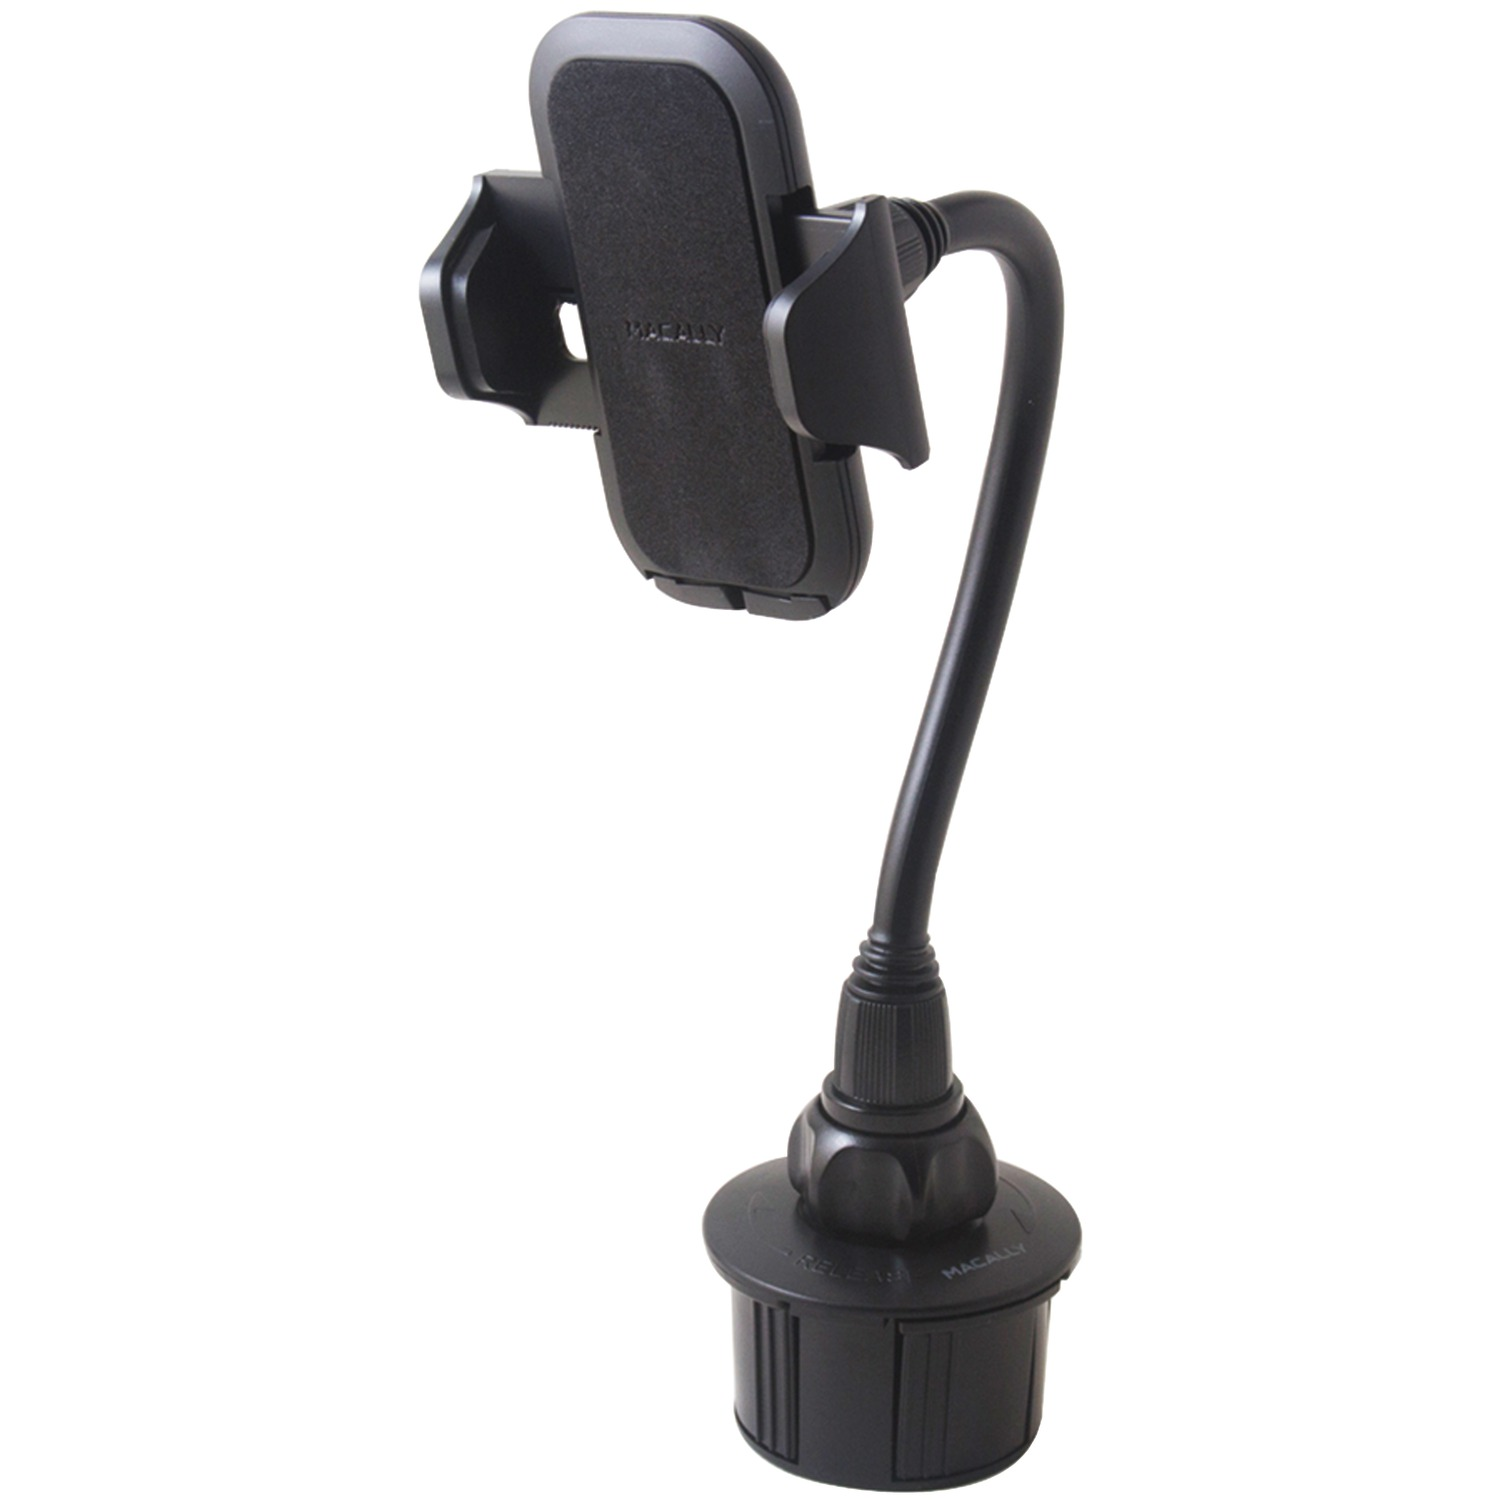 Image for Macally Super Long Cup Holder Mount from Circuit City